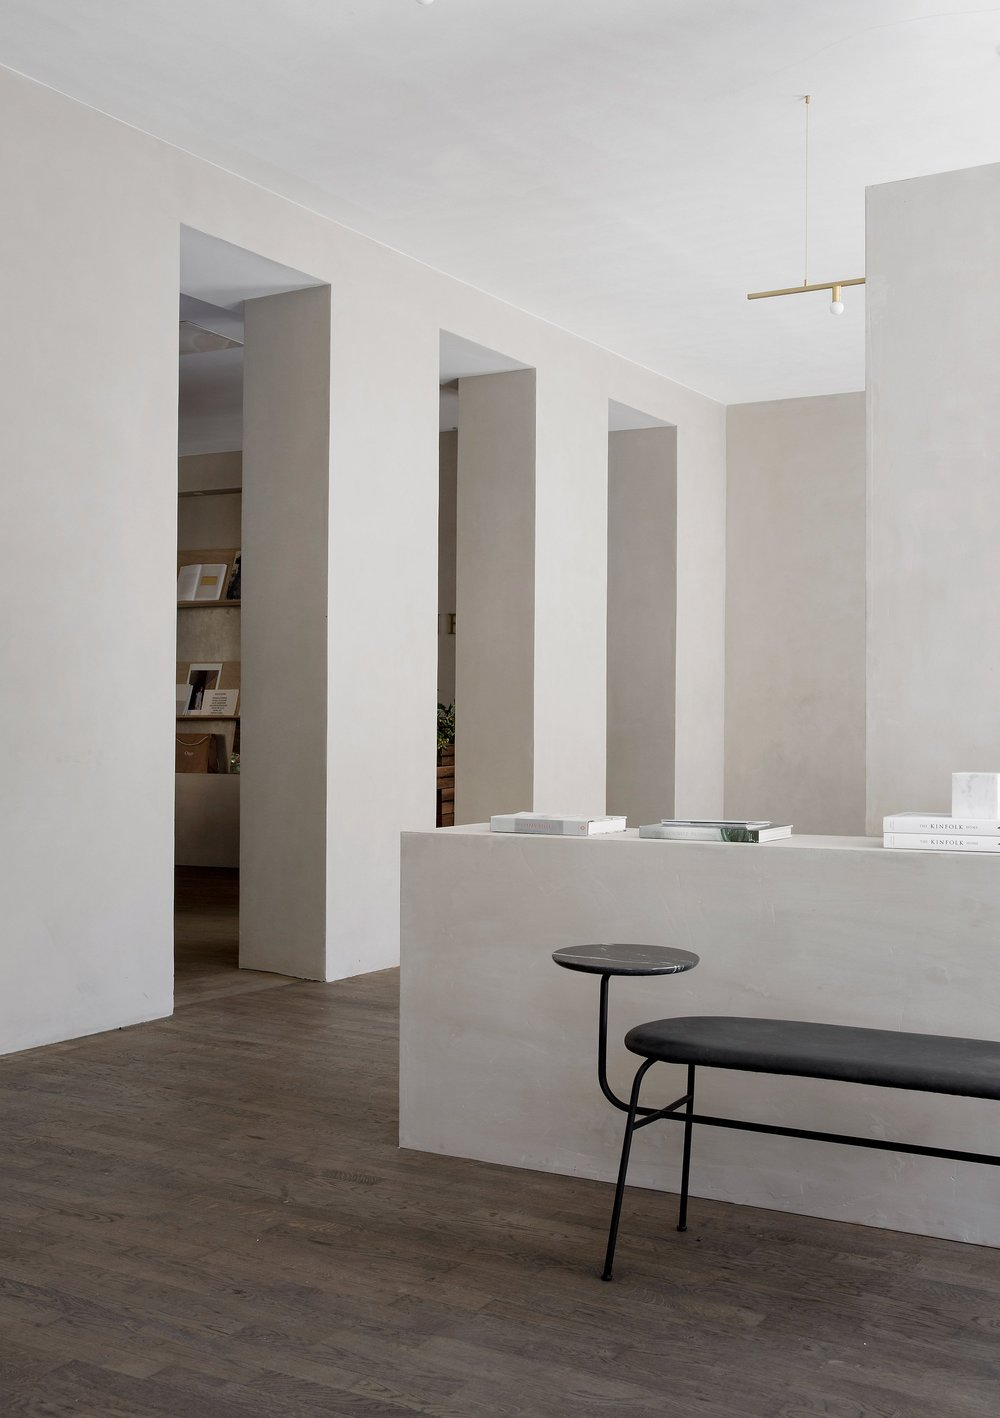 Kinfolk Workspace and Gallery by Norm Architects 2